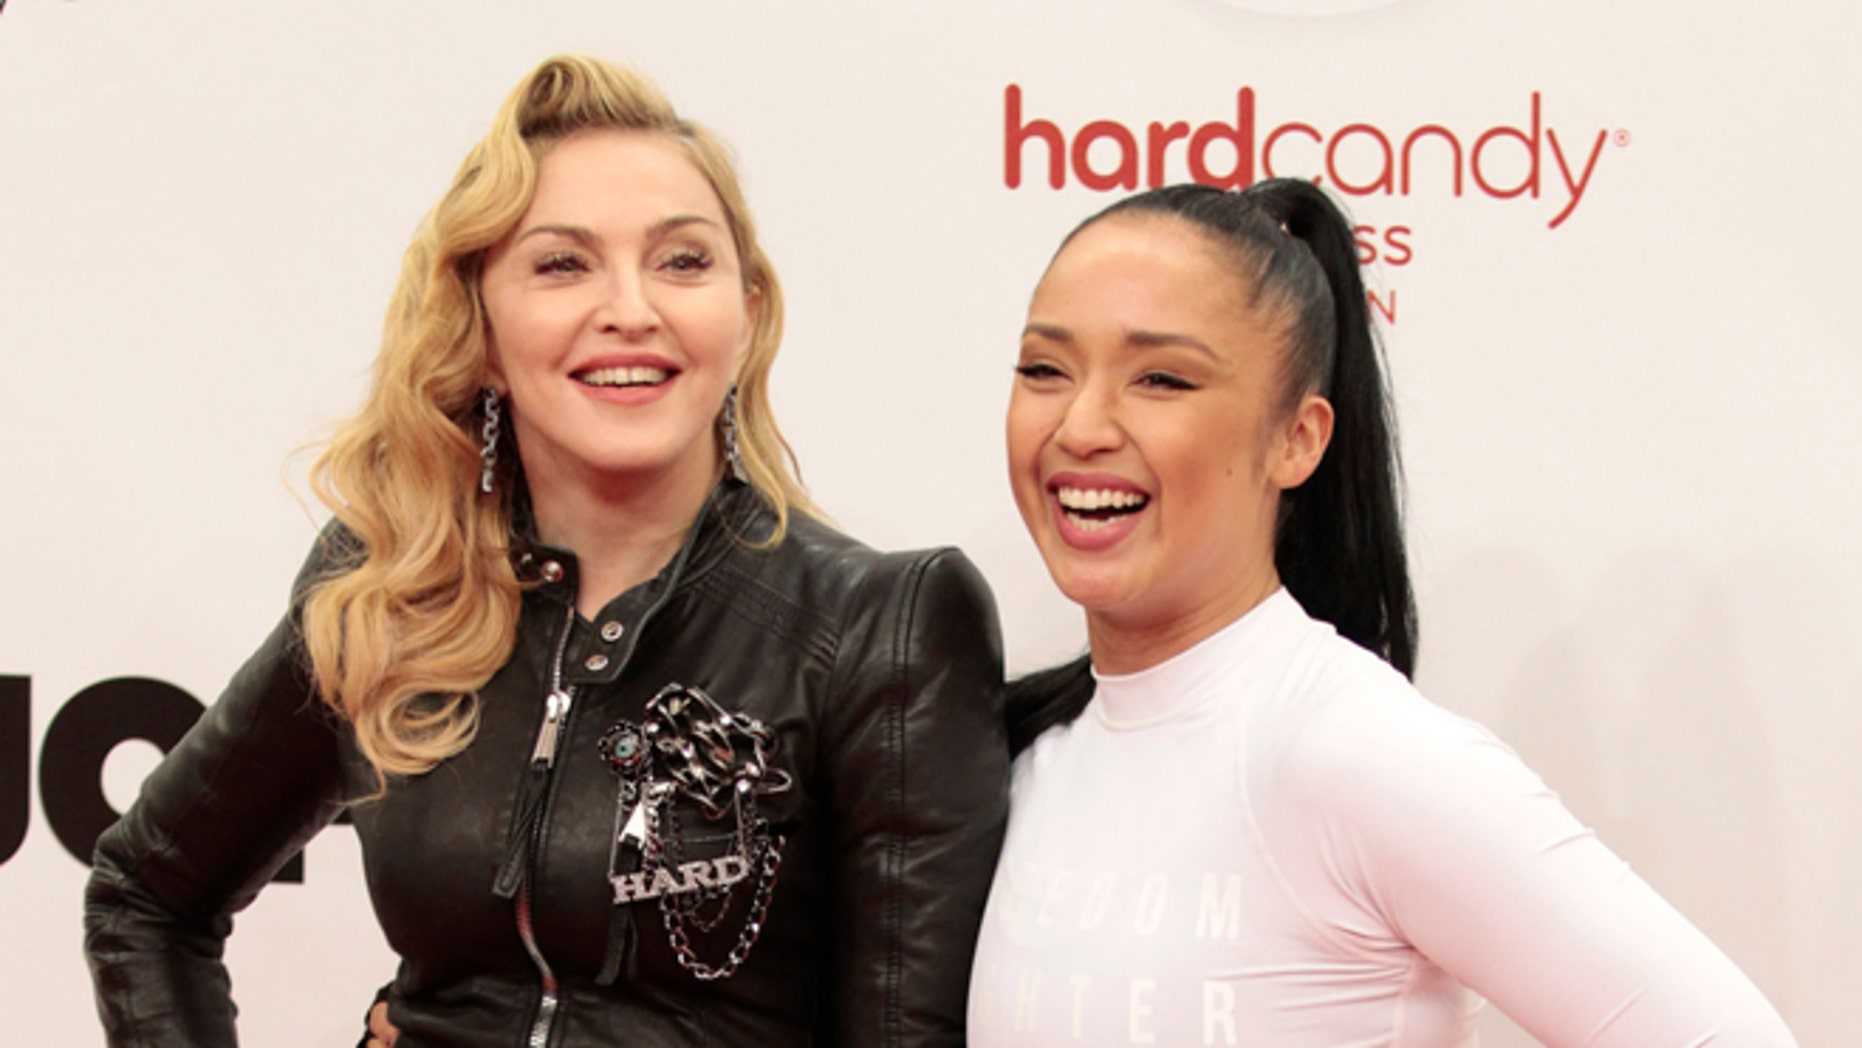 October 17, 2013. U.S. singer Madonna (L) poses with her personal fitness trainer Nicole Winhoffer to promote her latest gym in her Hard Candy Fitness centre chain in Berlin.